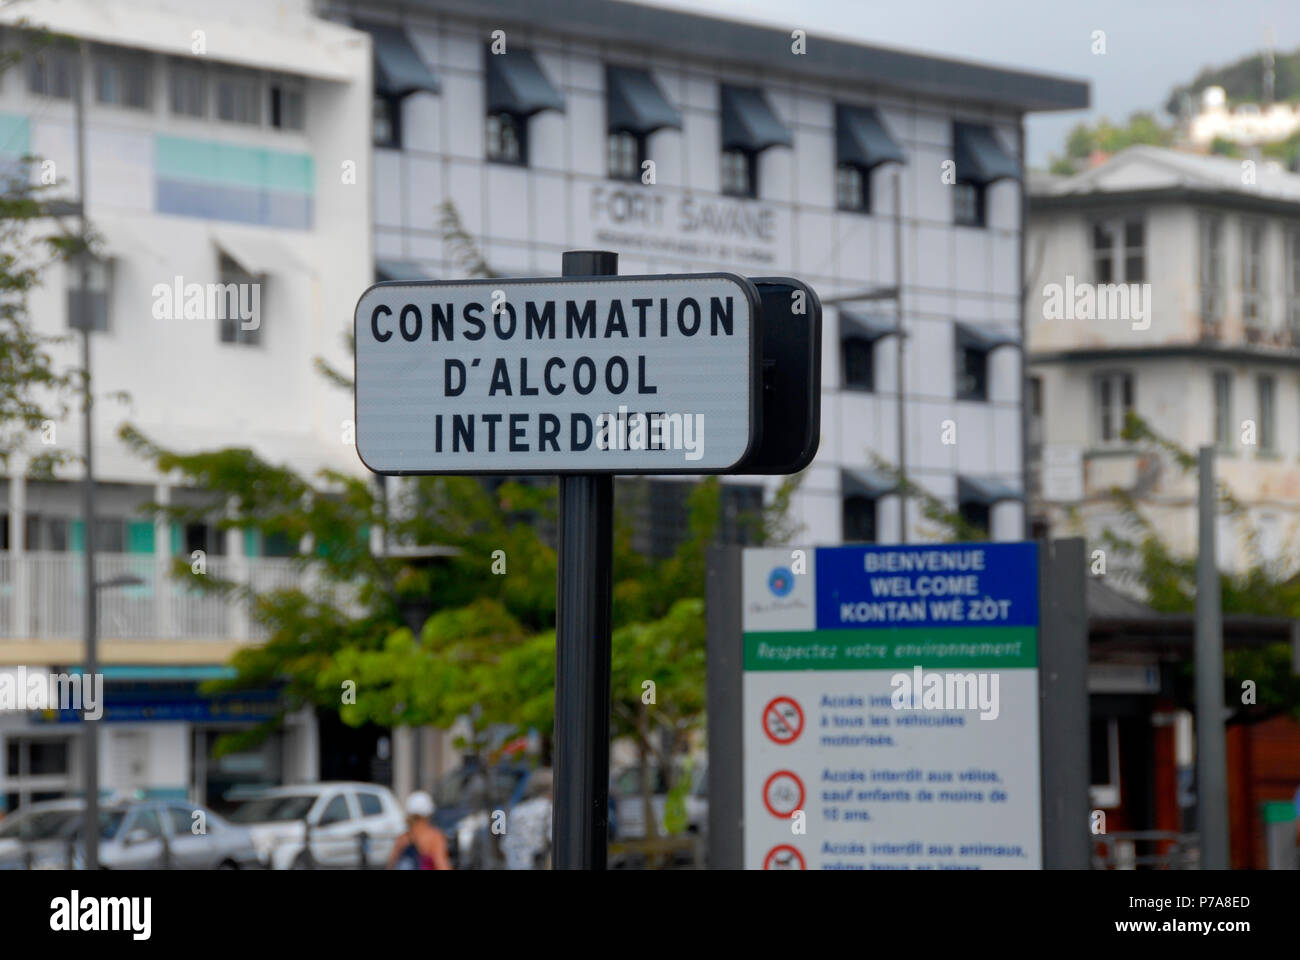 Roadside sign in Fort de France, Martinique, Caribbean - Consommation d'alcool interdite (consumption of alcohol forbidden) - Stock Image